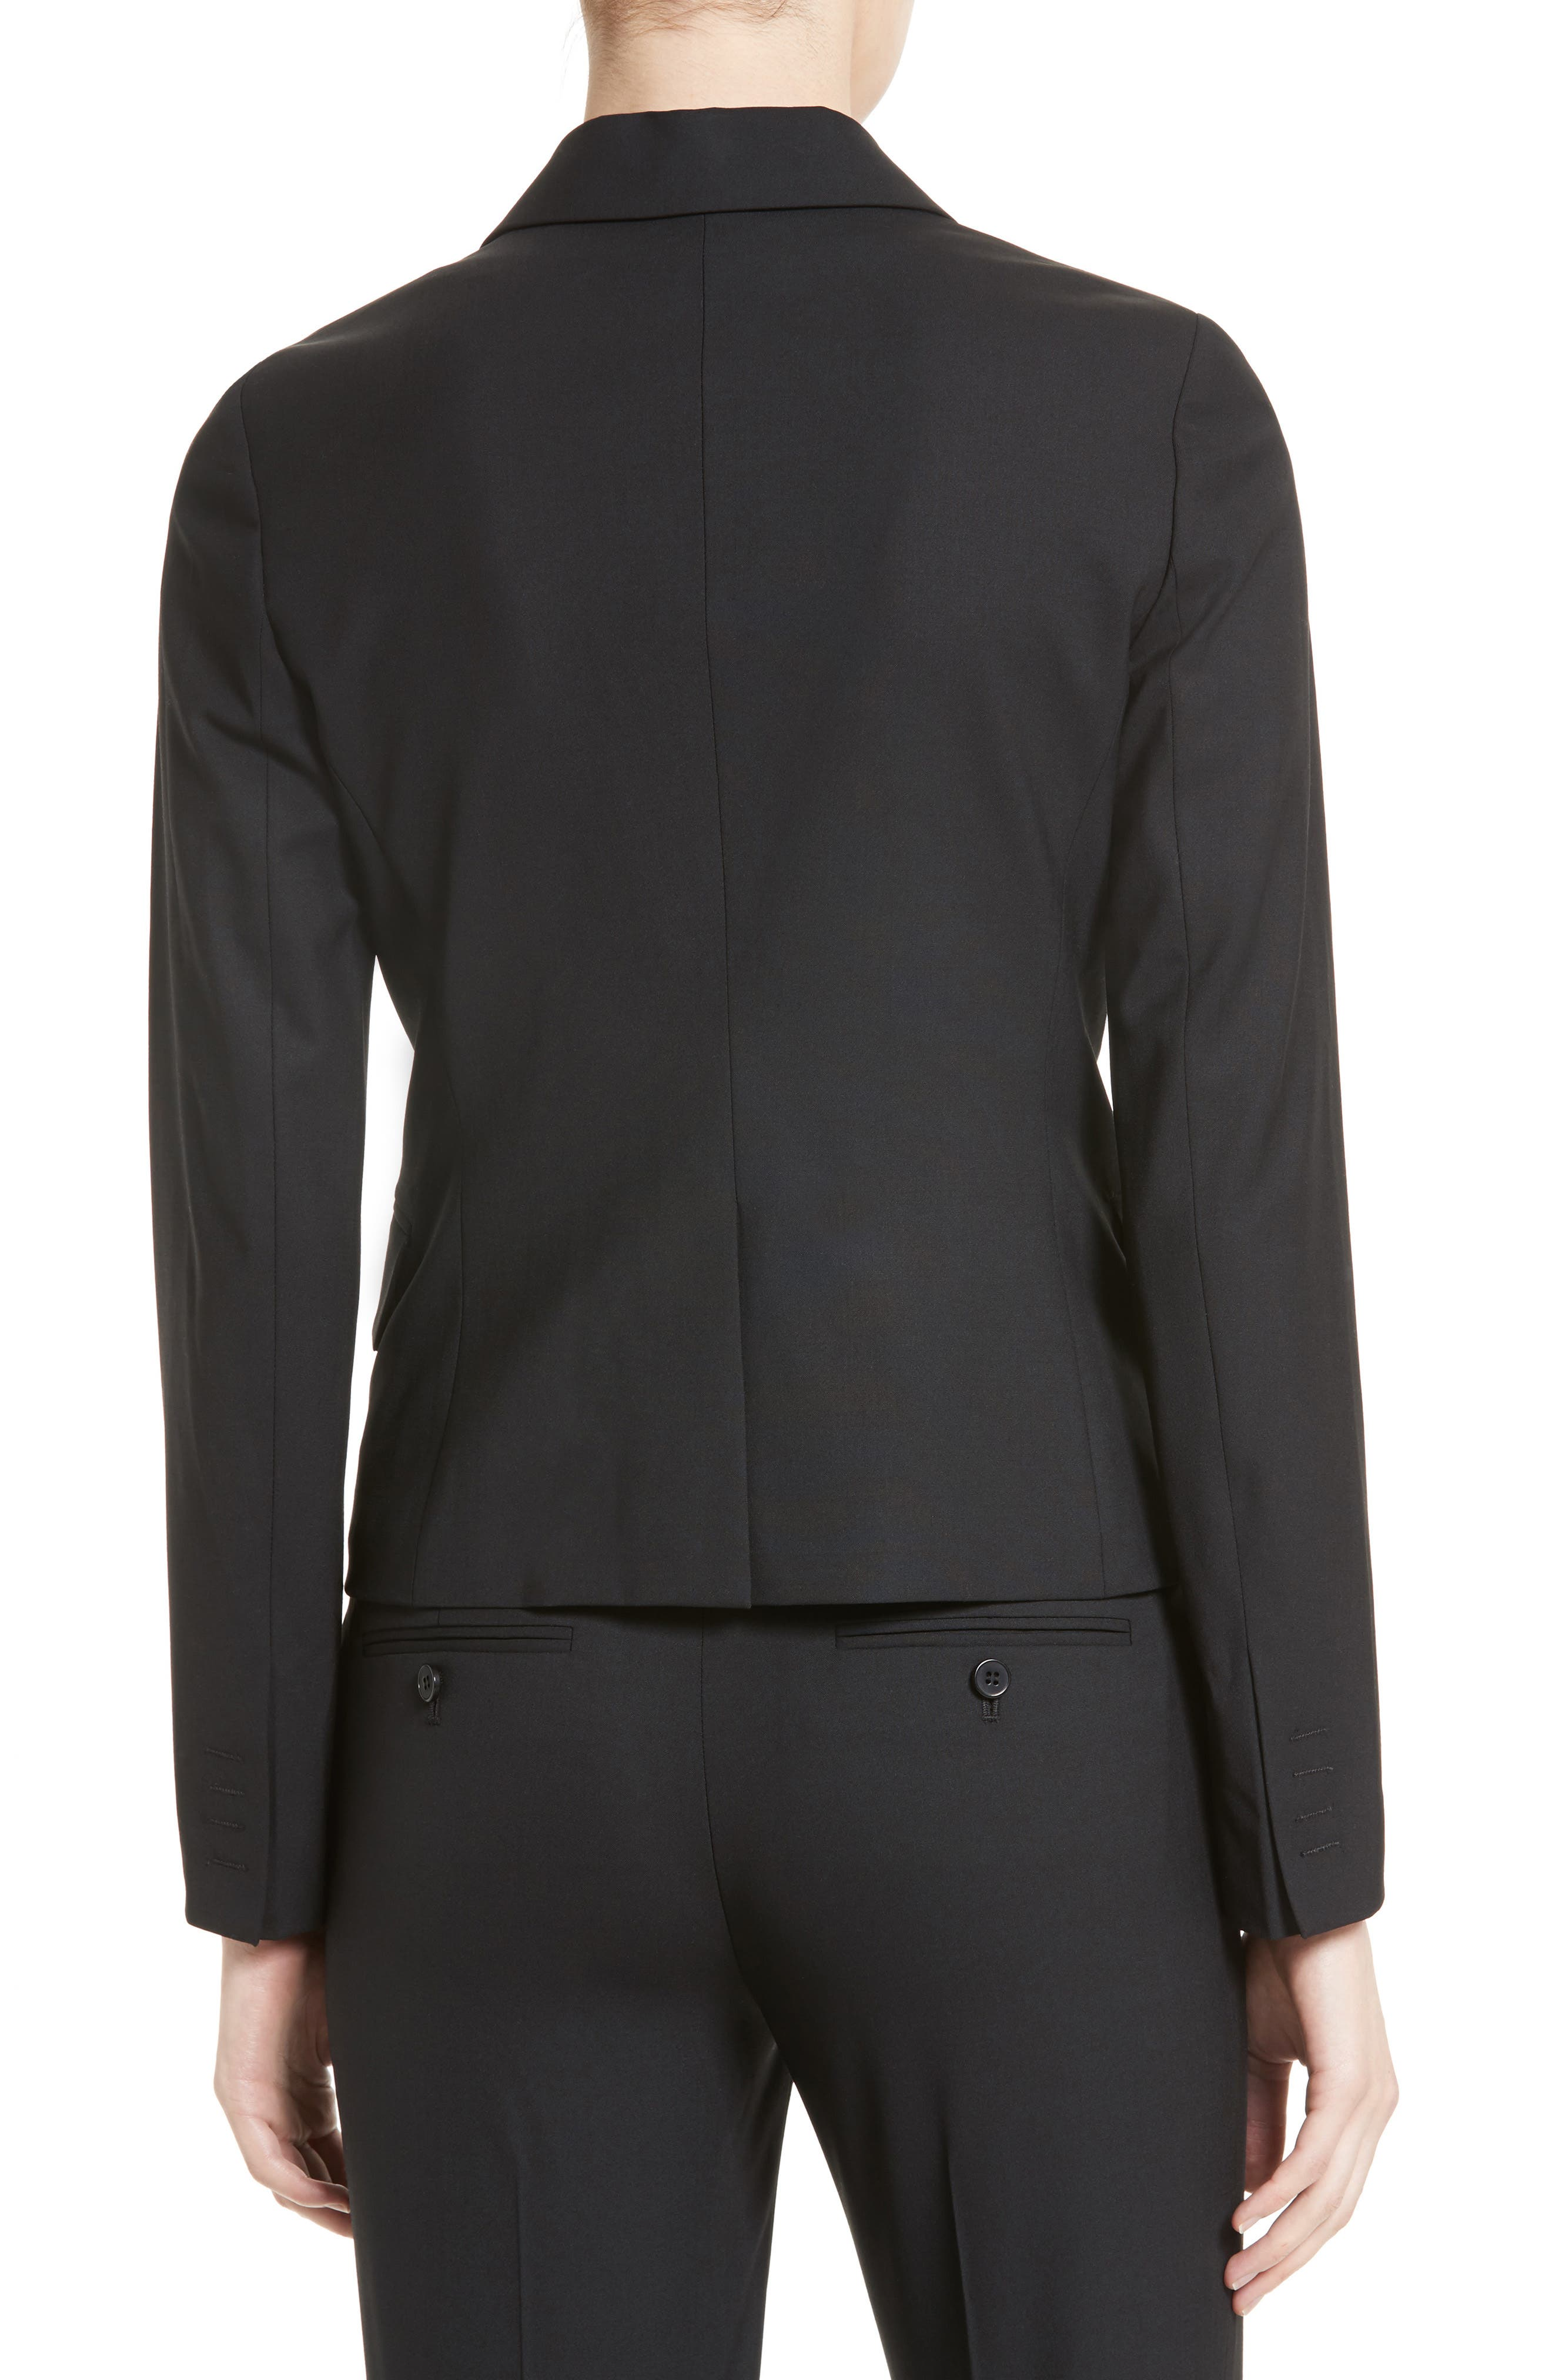 Alternate Image 2  - Theory Brince B Good Wool Suit Jacket (Nordstrom Exclusive)